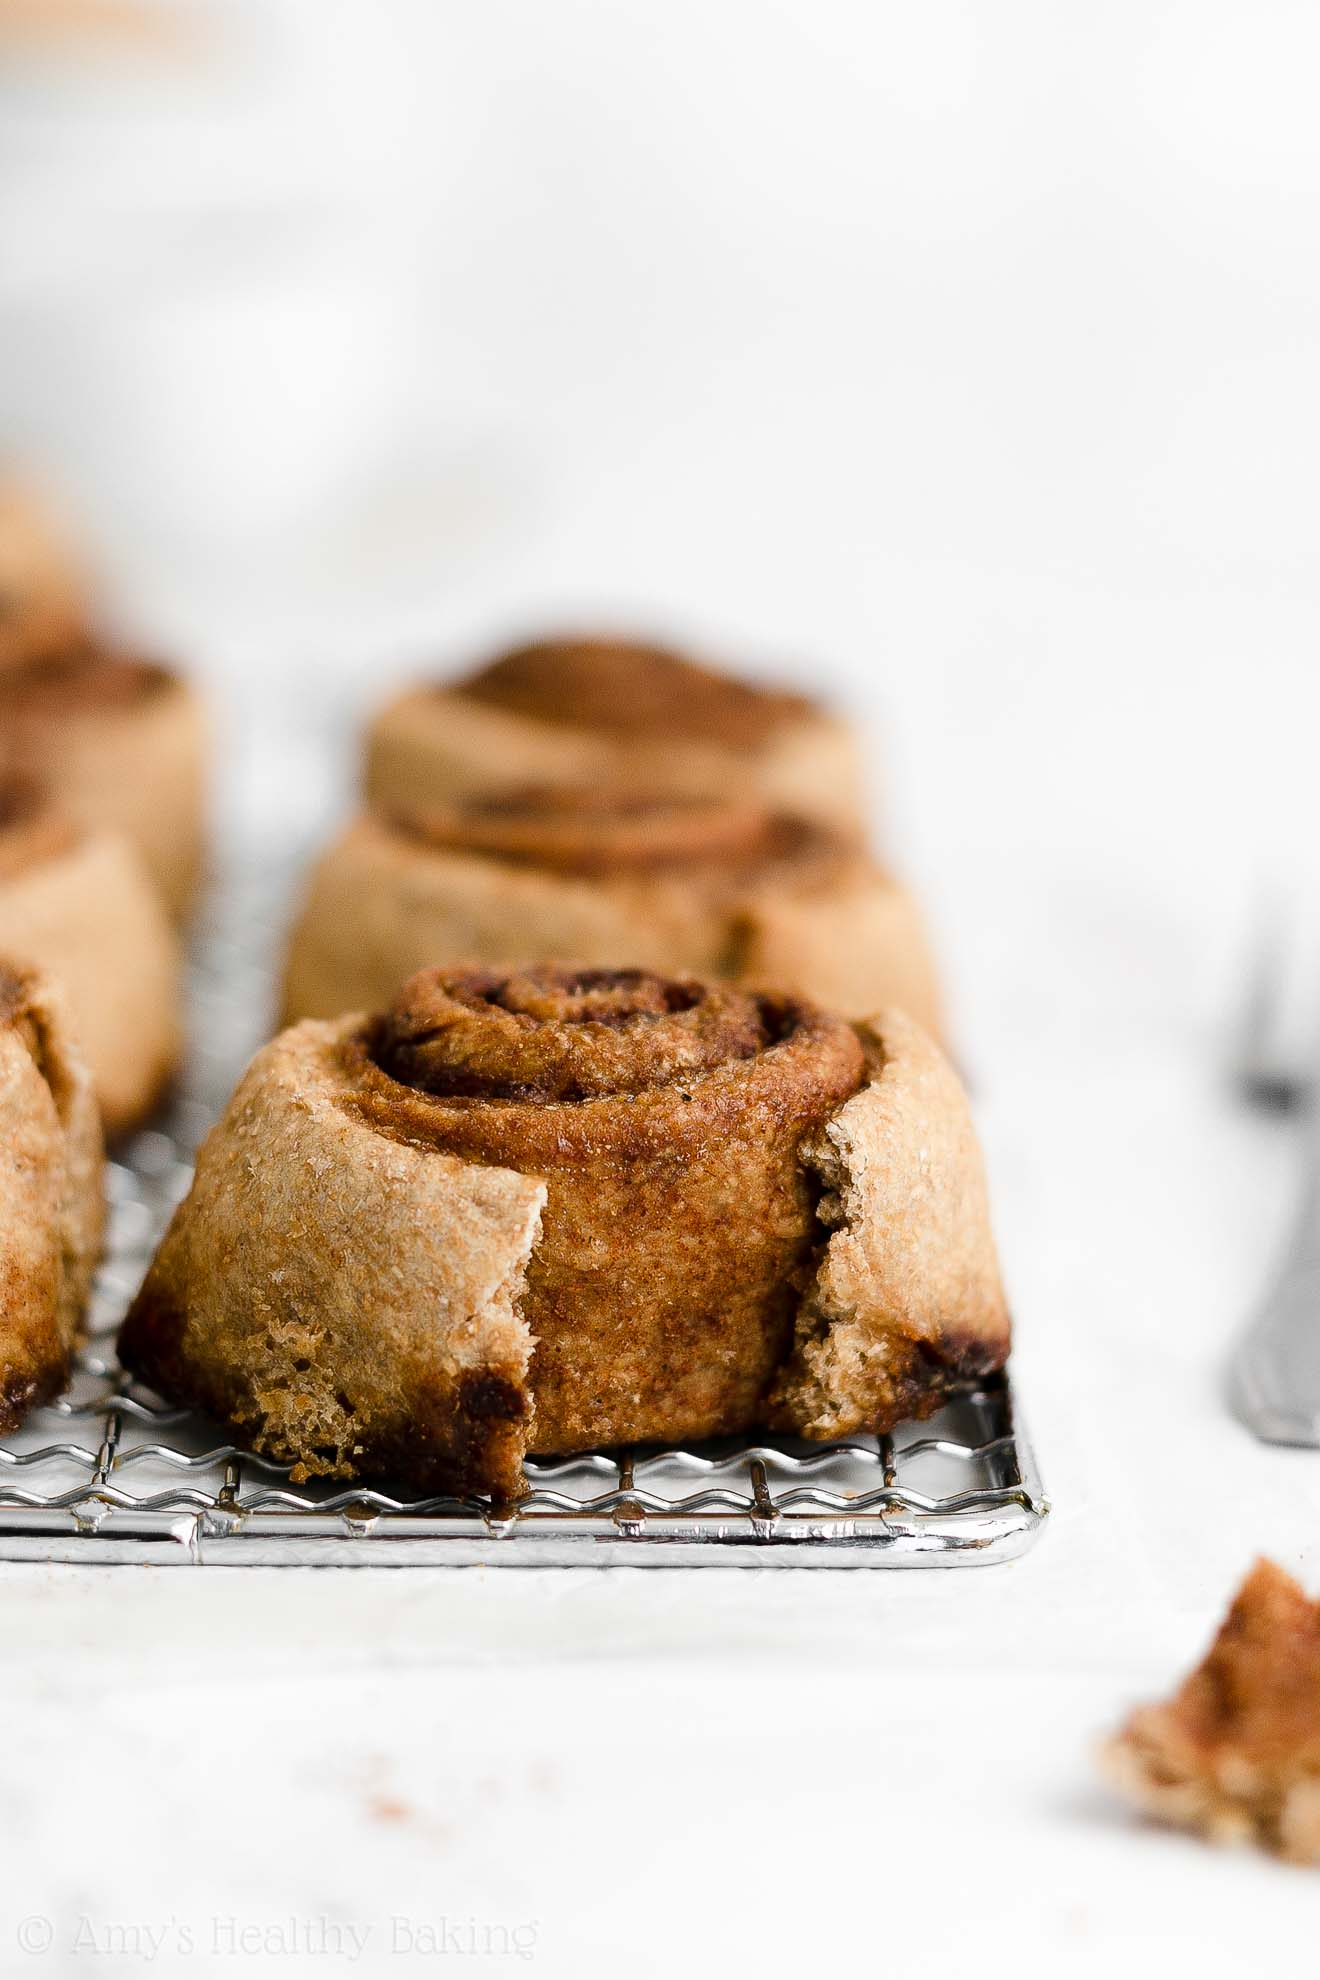 ULTIMATE Best Ever Healthy Whole Grain Low Calorie Tender Fluffy Cinnamon Rolls